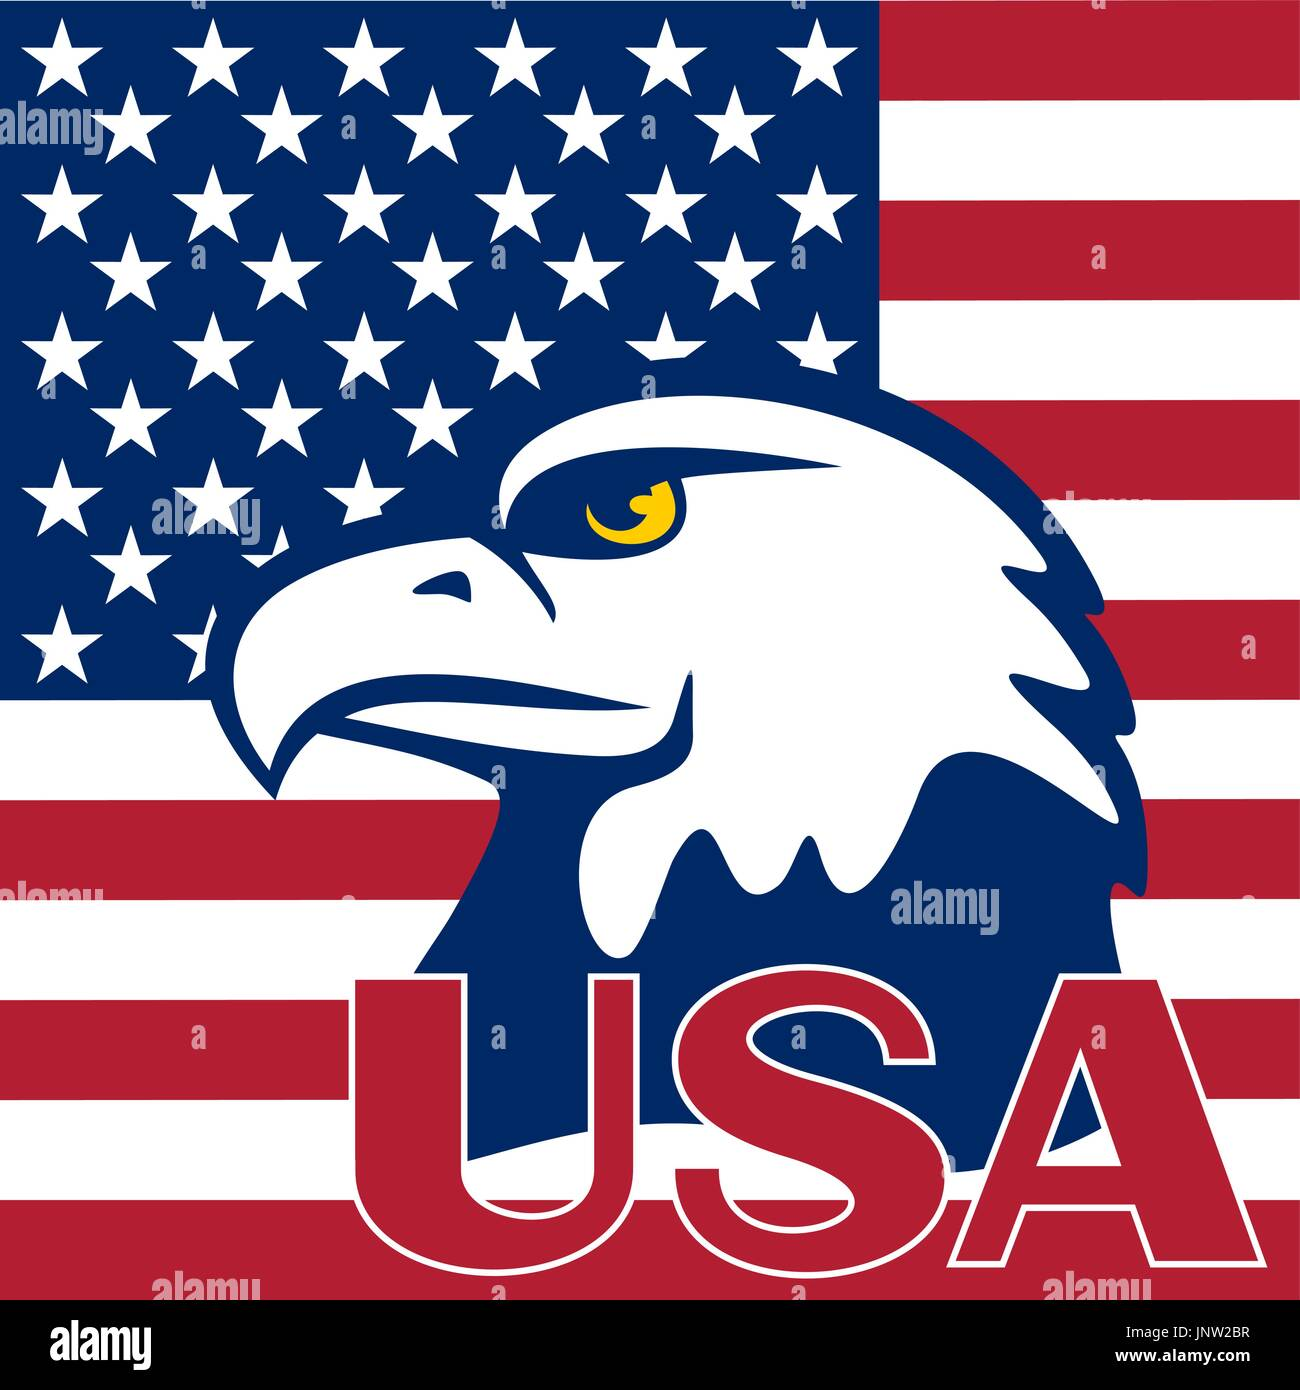 Eagle is located on a flag of the usa symbols of the united eagle is located on a flag of the usa symbols of the united states biocorpaavc Images